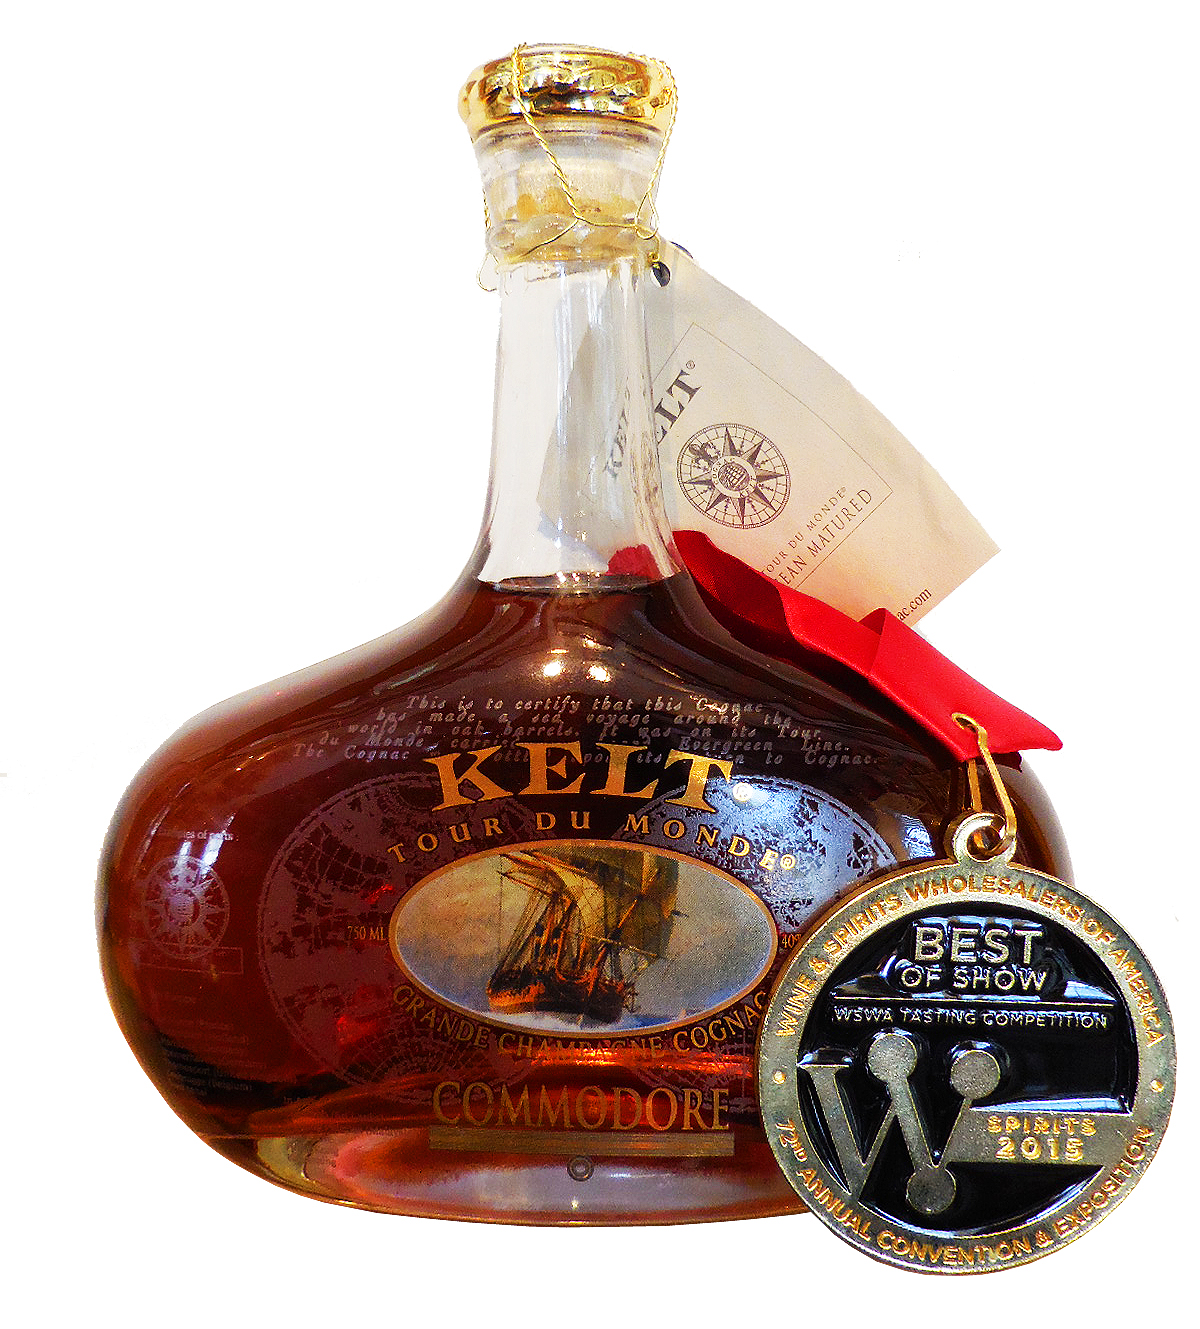 Kelt Cognac takes Top Spot in 2015 WSWA Awards